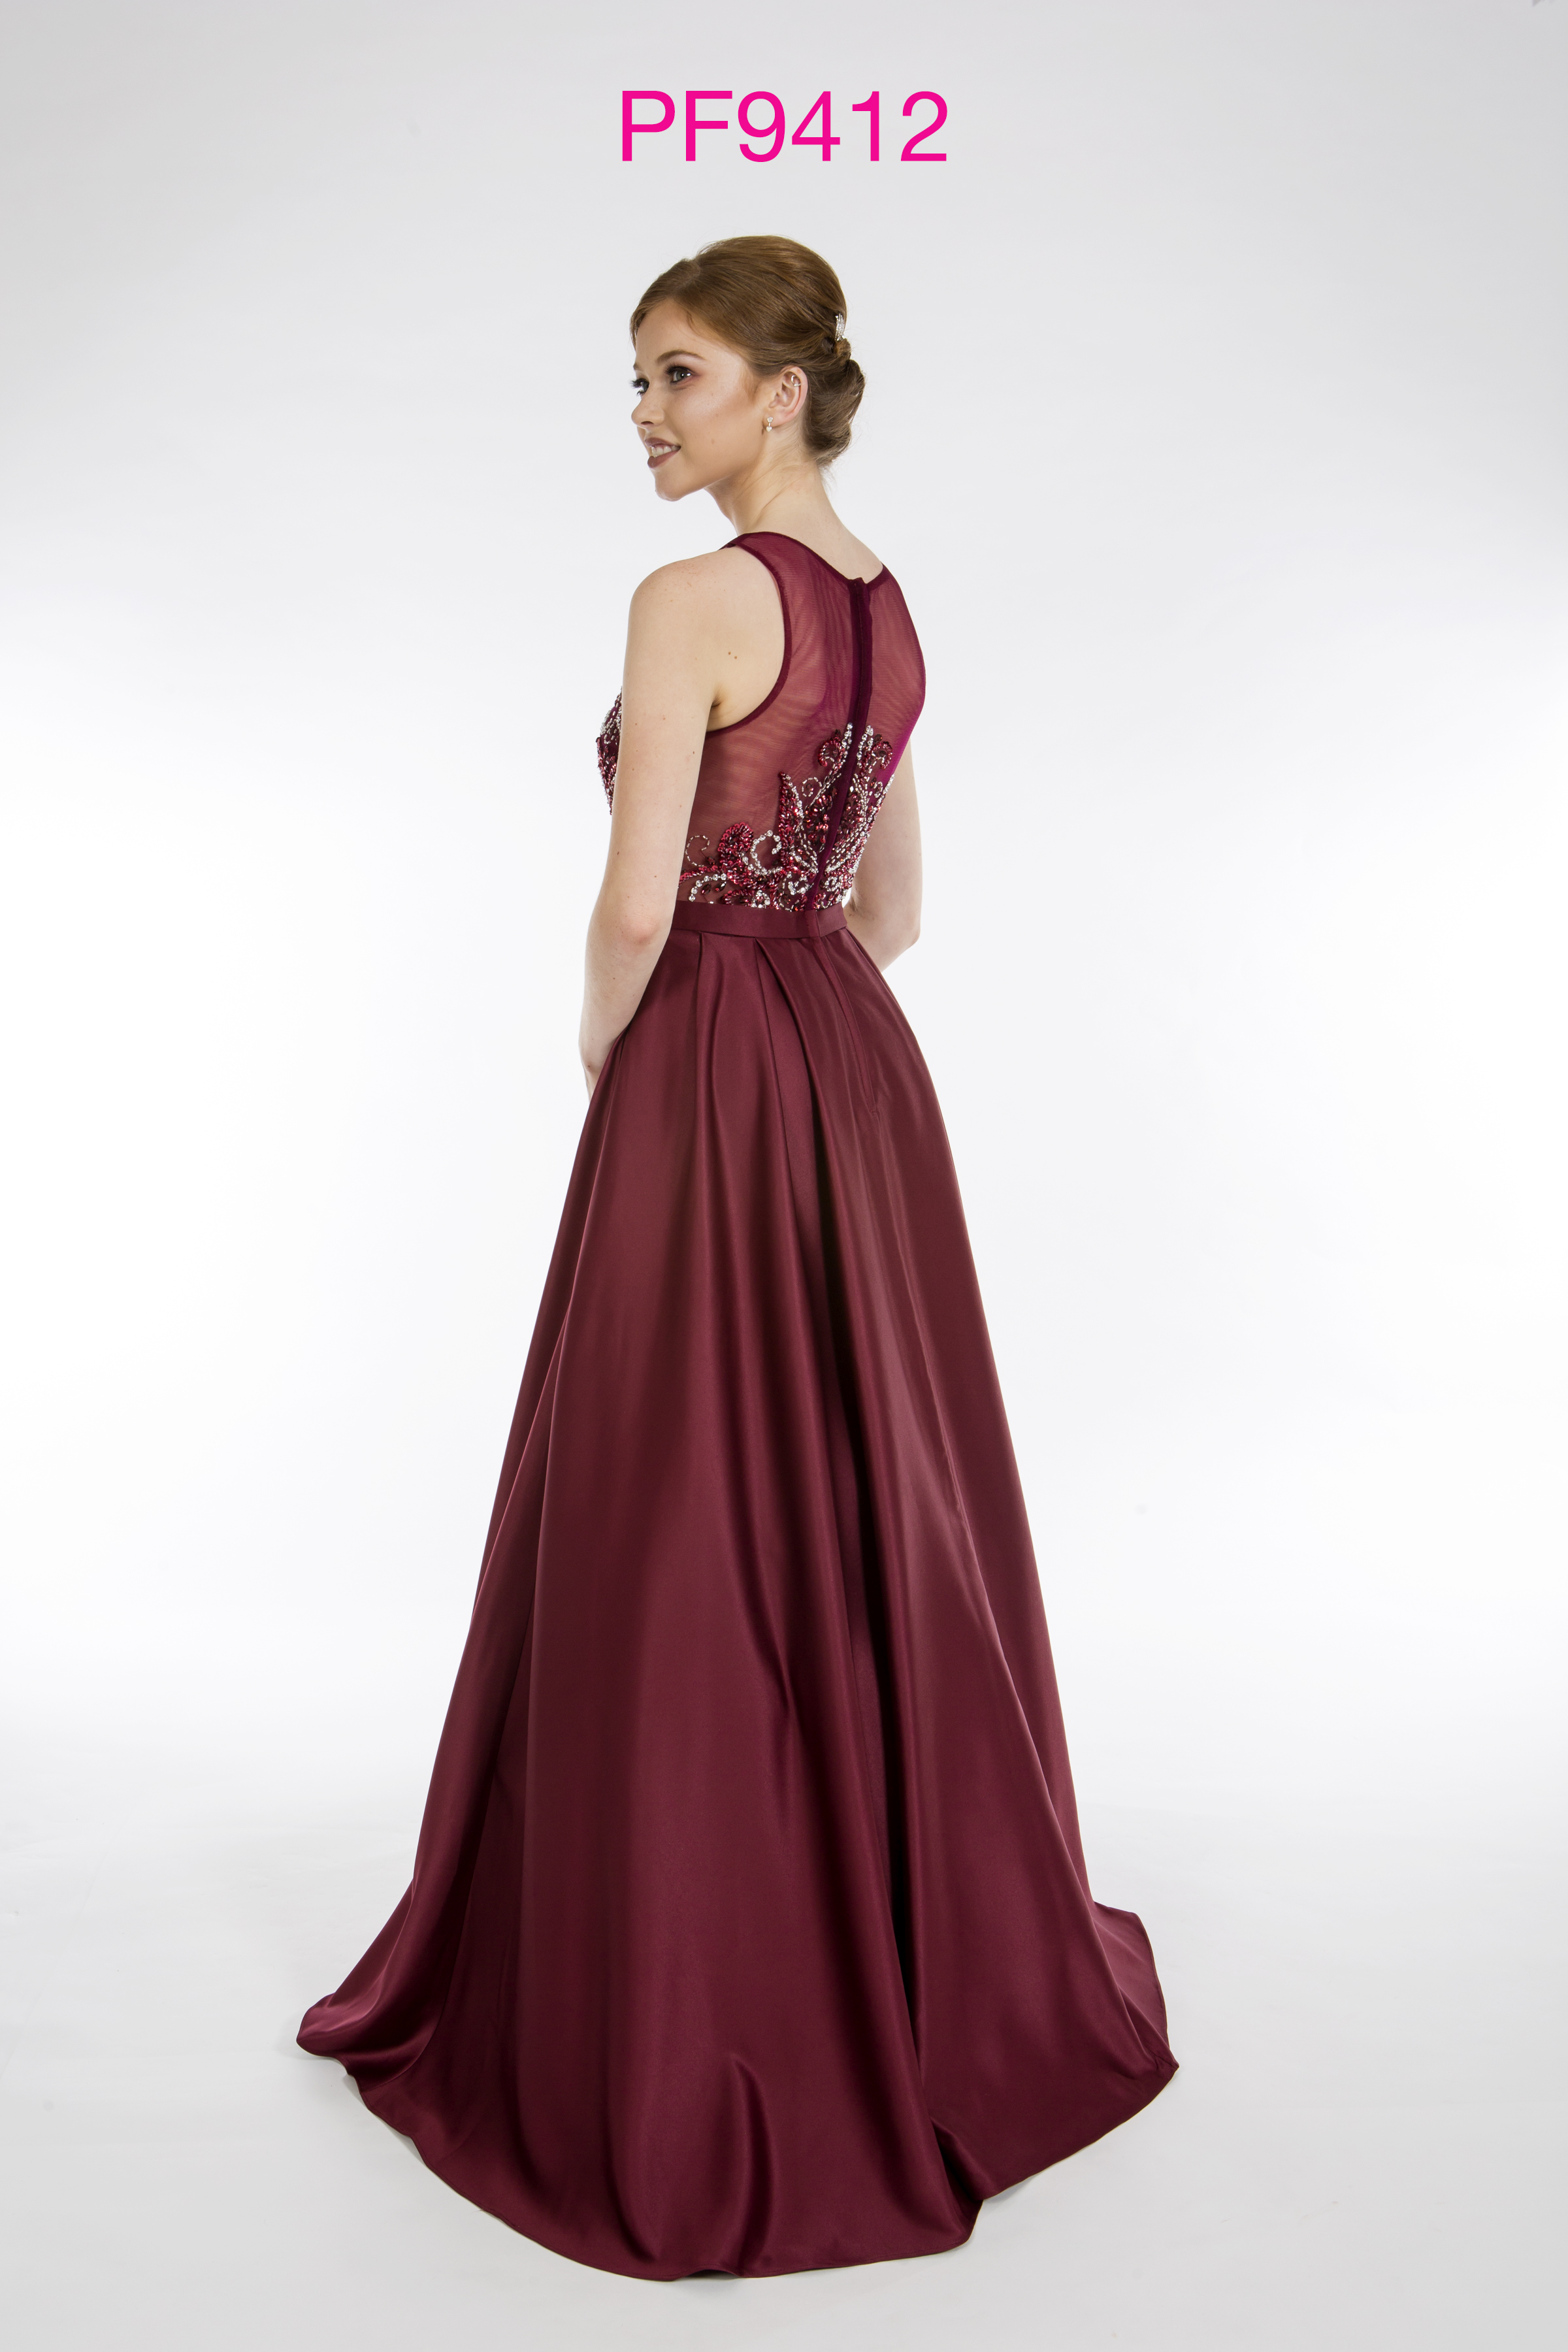 Pf9412 Blackcurrant Prom Dress Prom Frocks Uk Prom Dresses